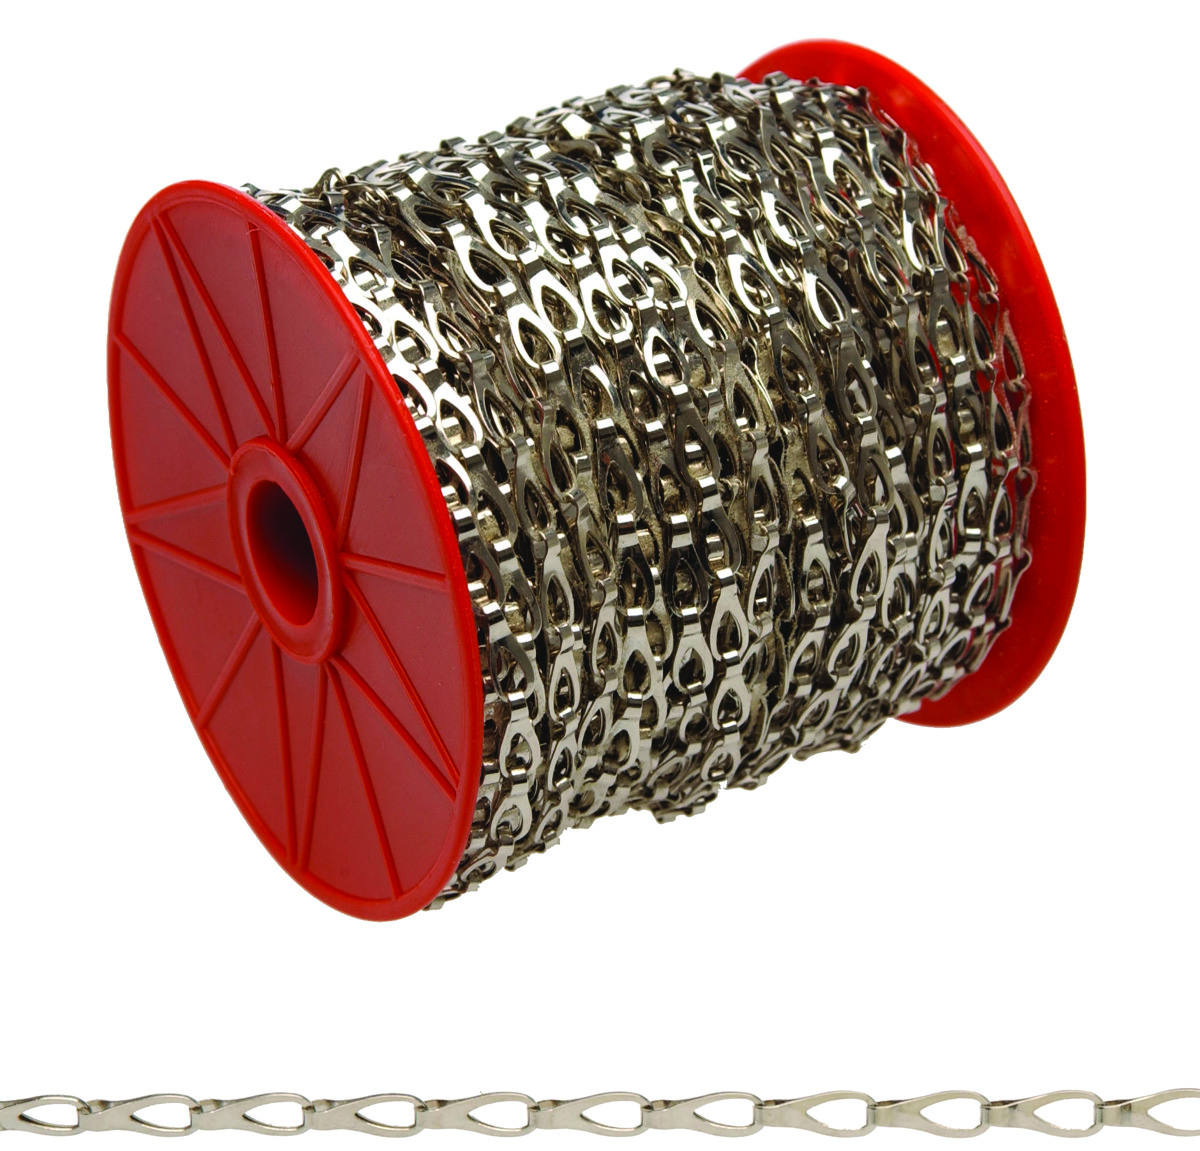 Campbell Chain 0710227 Hobby Craft Sash Chain #2 By 164 Foot Chrome Plated  Steel